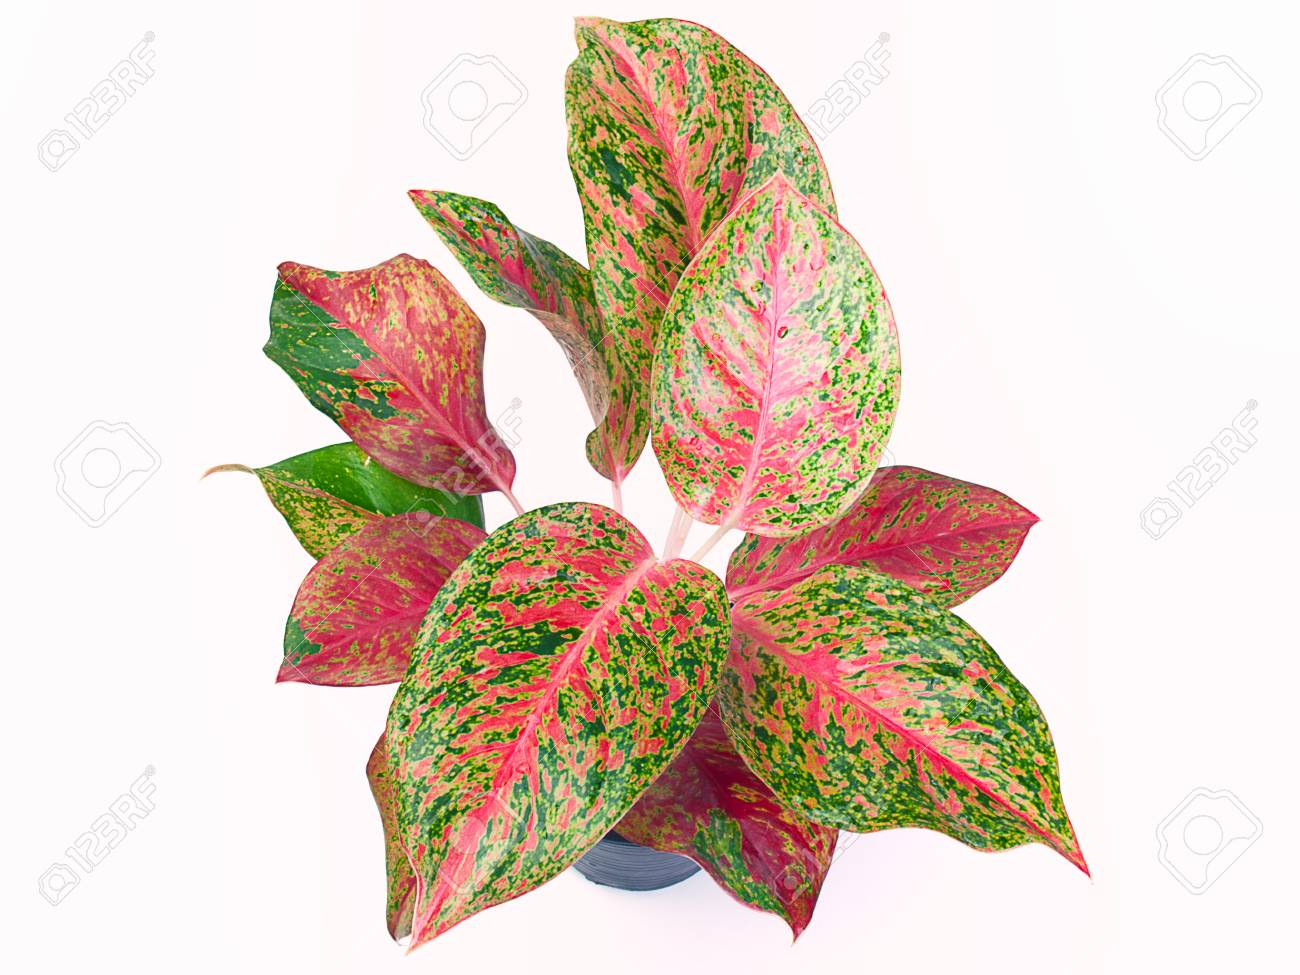 Top View Queen Of The Leafy Plants Scientific Name Is Caladium